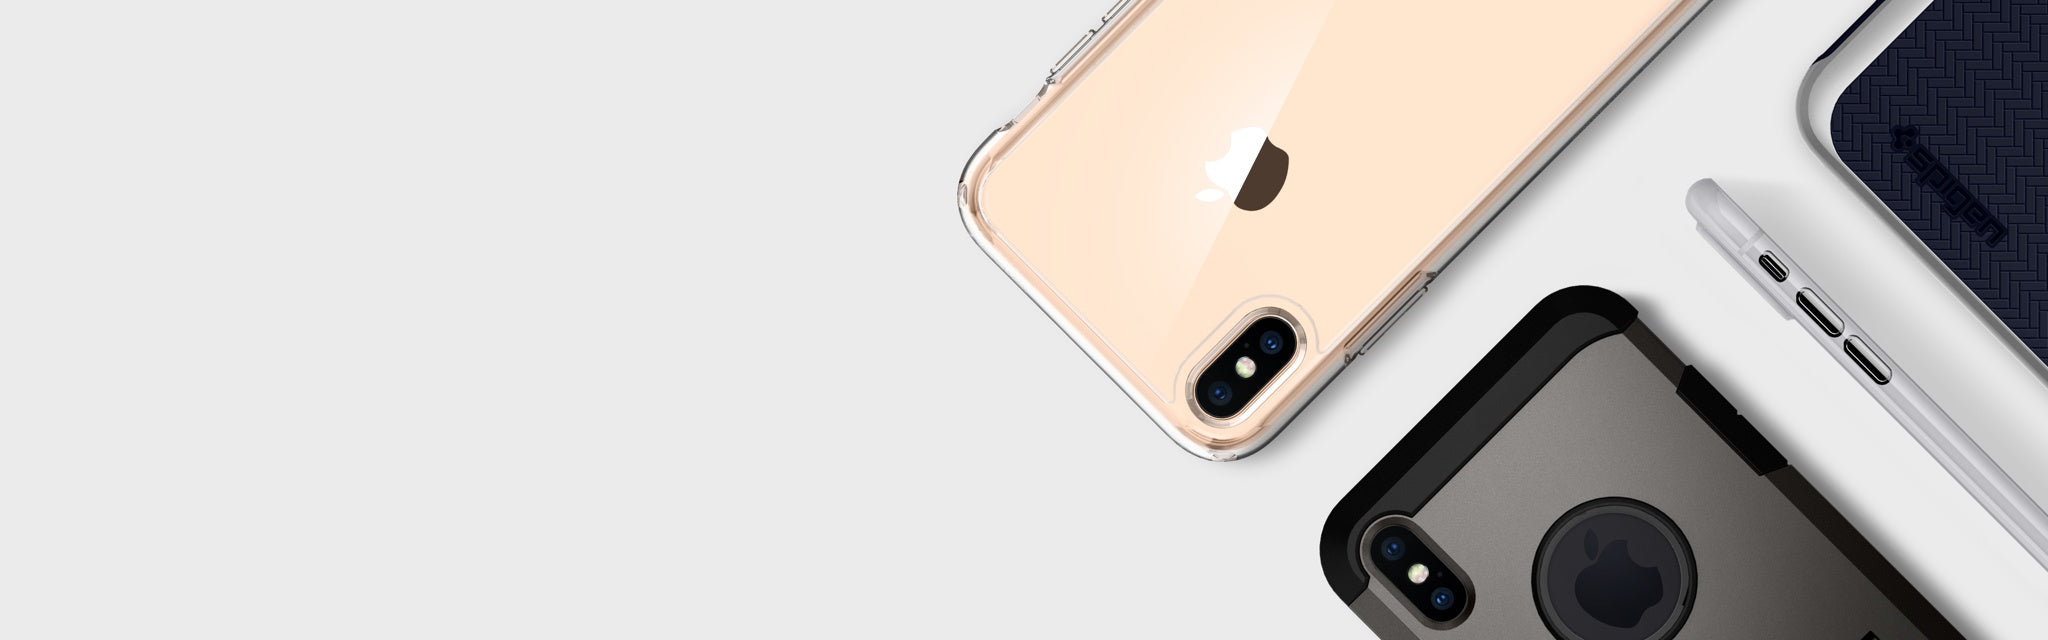 iPhone XS Max Case Collection